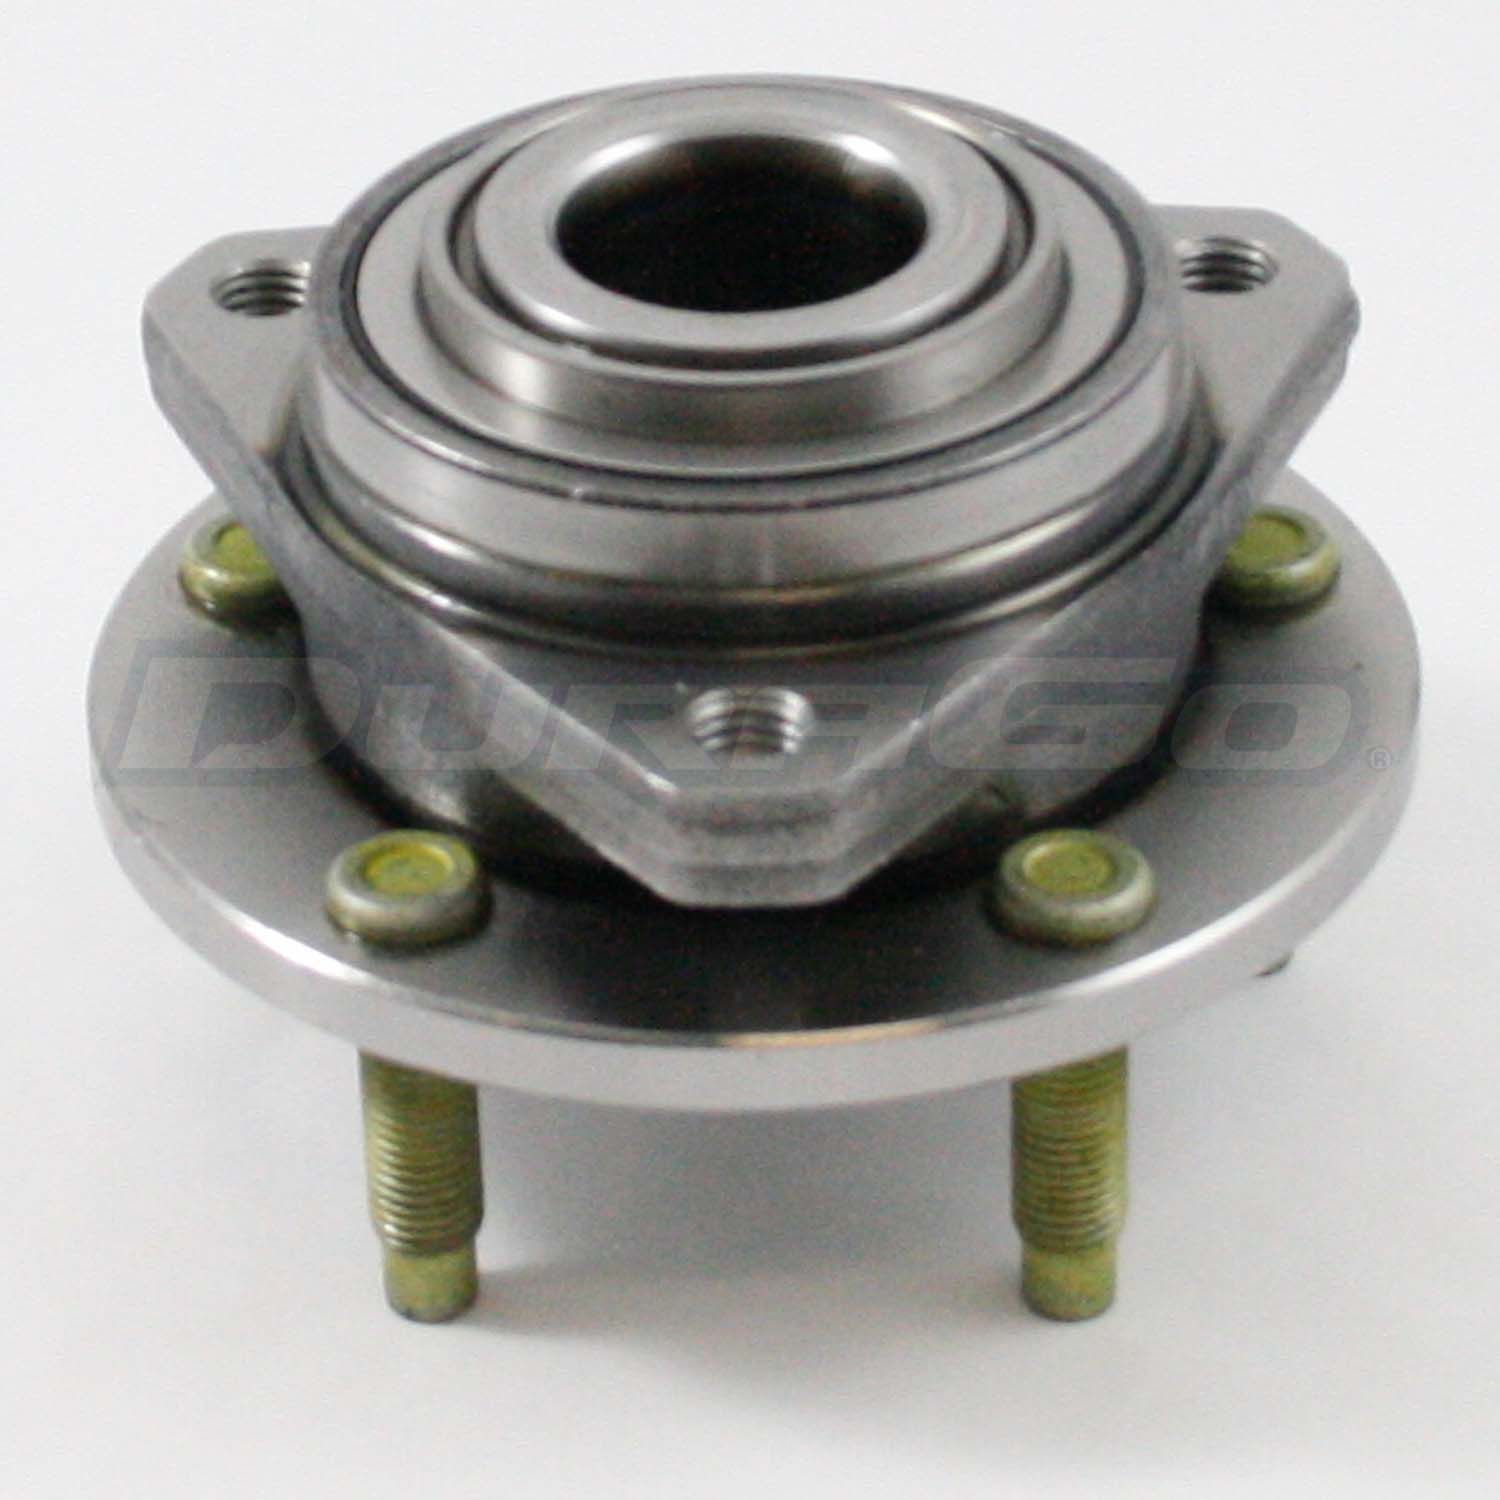 DURAGO - Axle Bearing and Hub Assembly - D48 295-13215